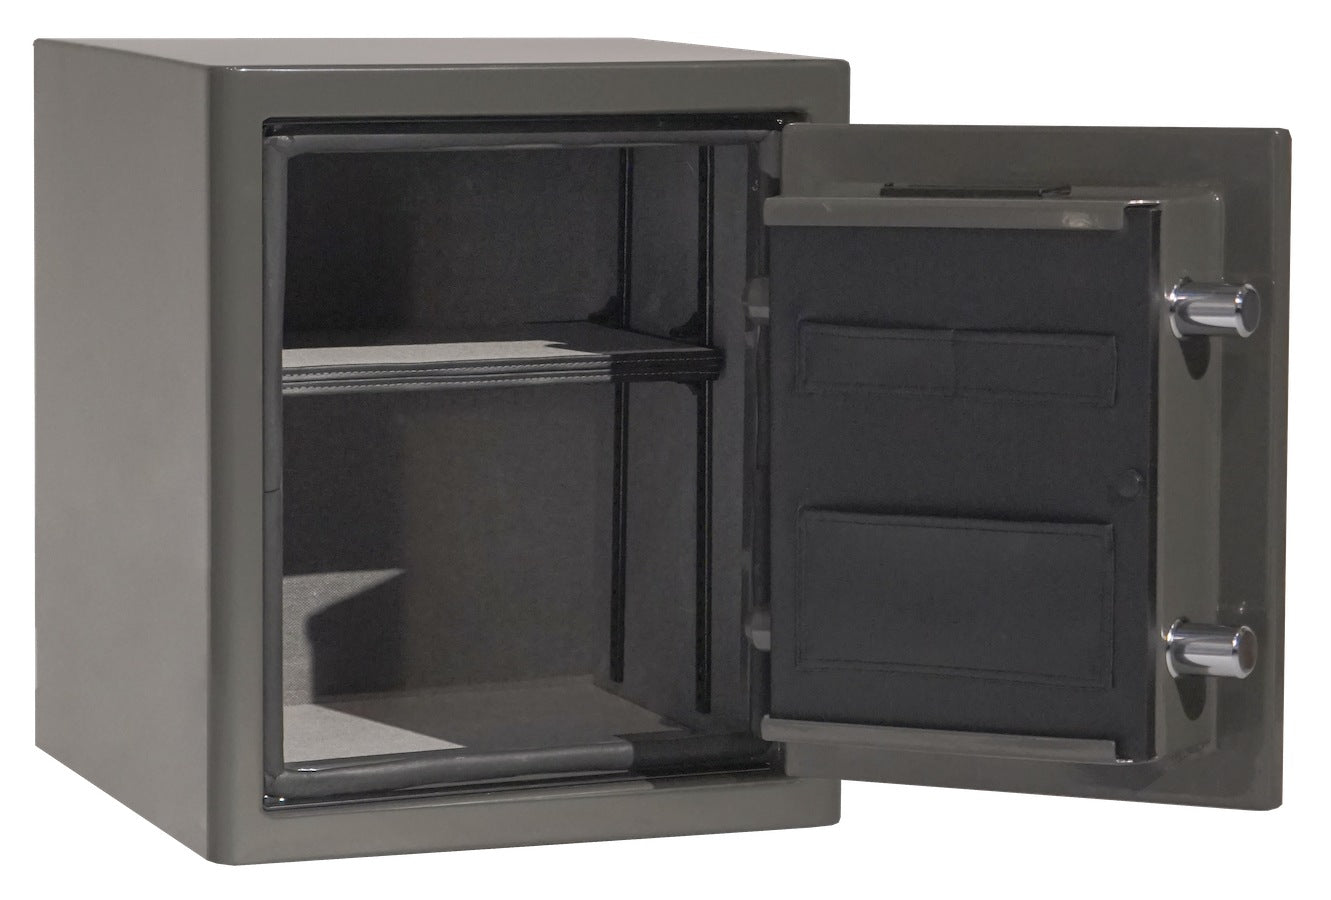 Fireproof Safes & Waterproof Chests - Sports Afield SA-H3 Sanctuary Platinum Series Home & Office Safe